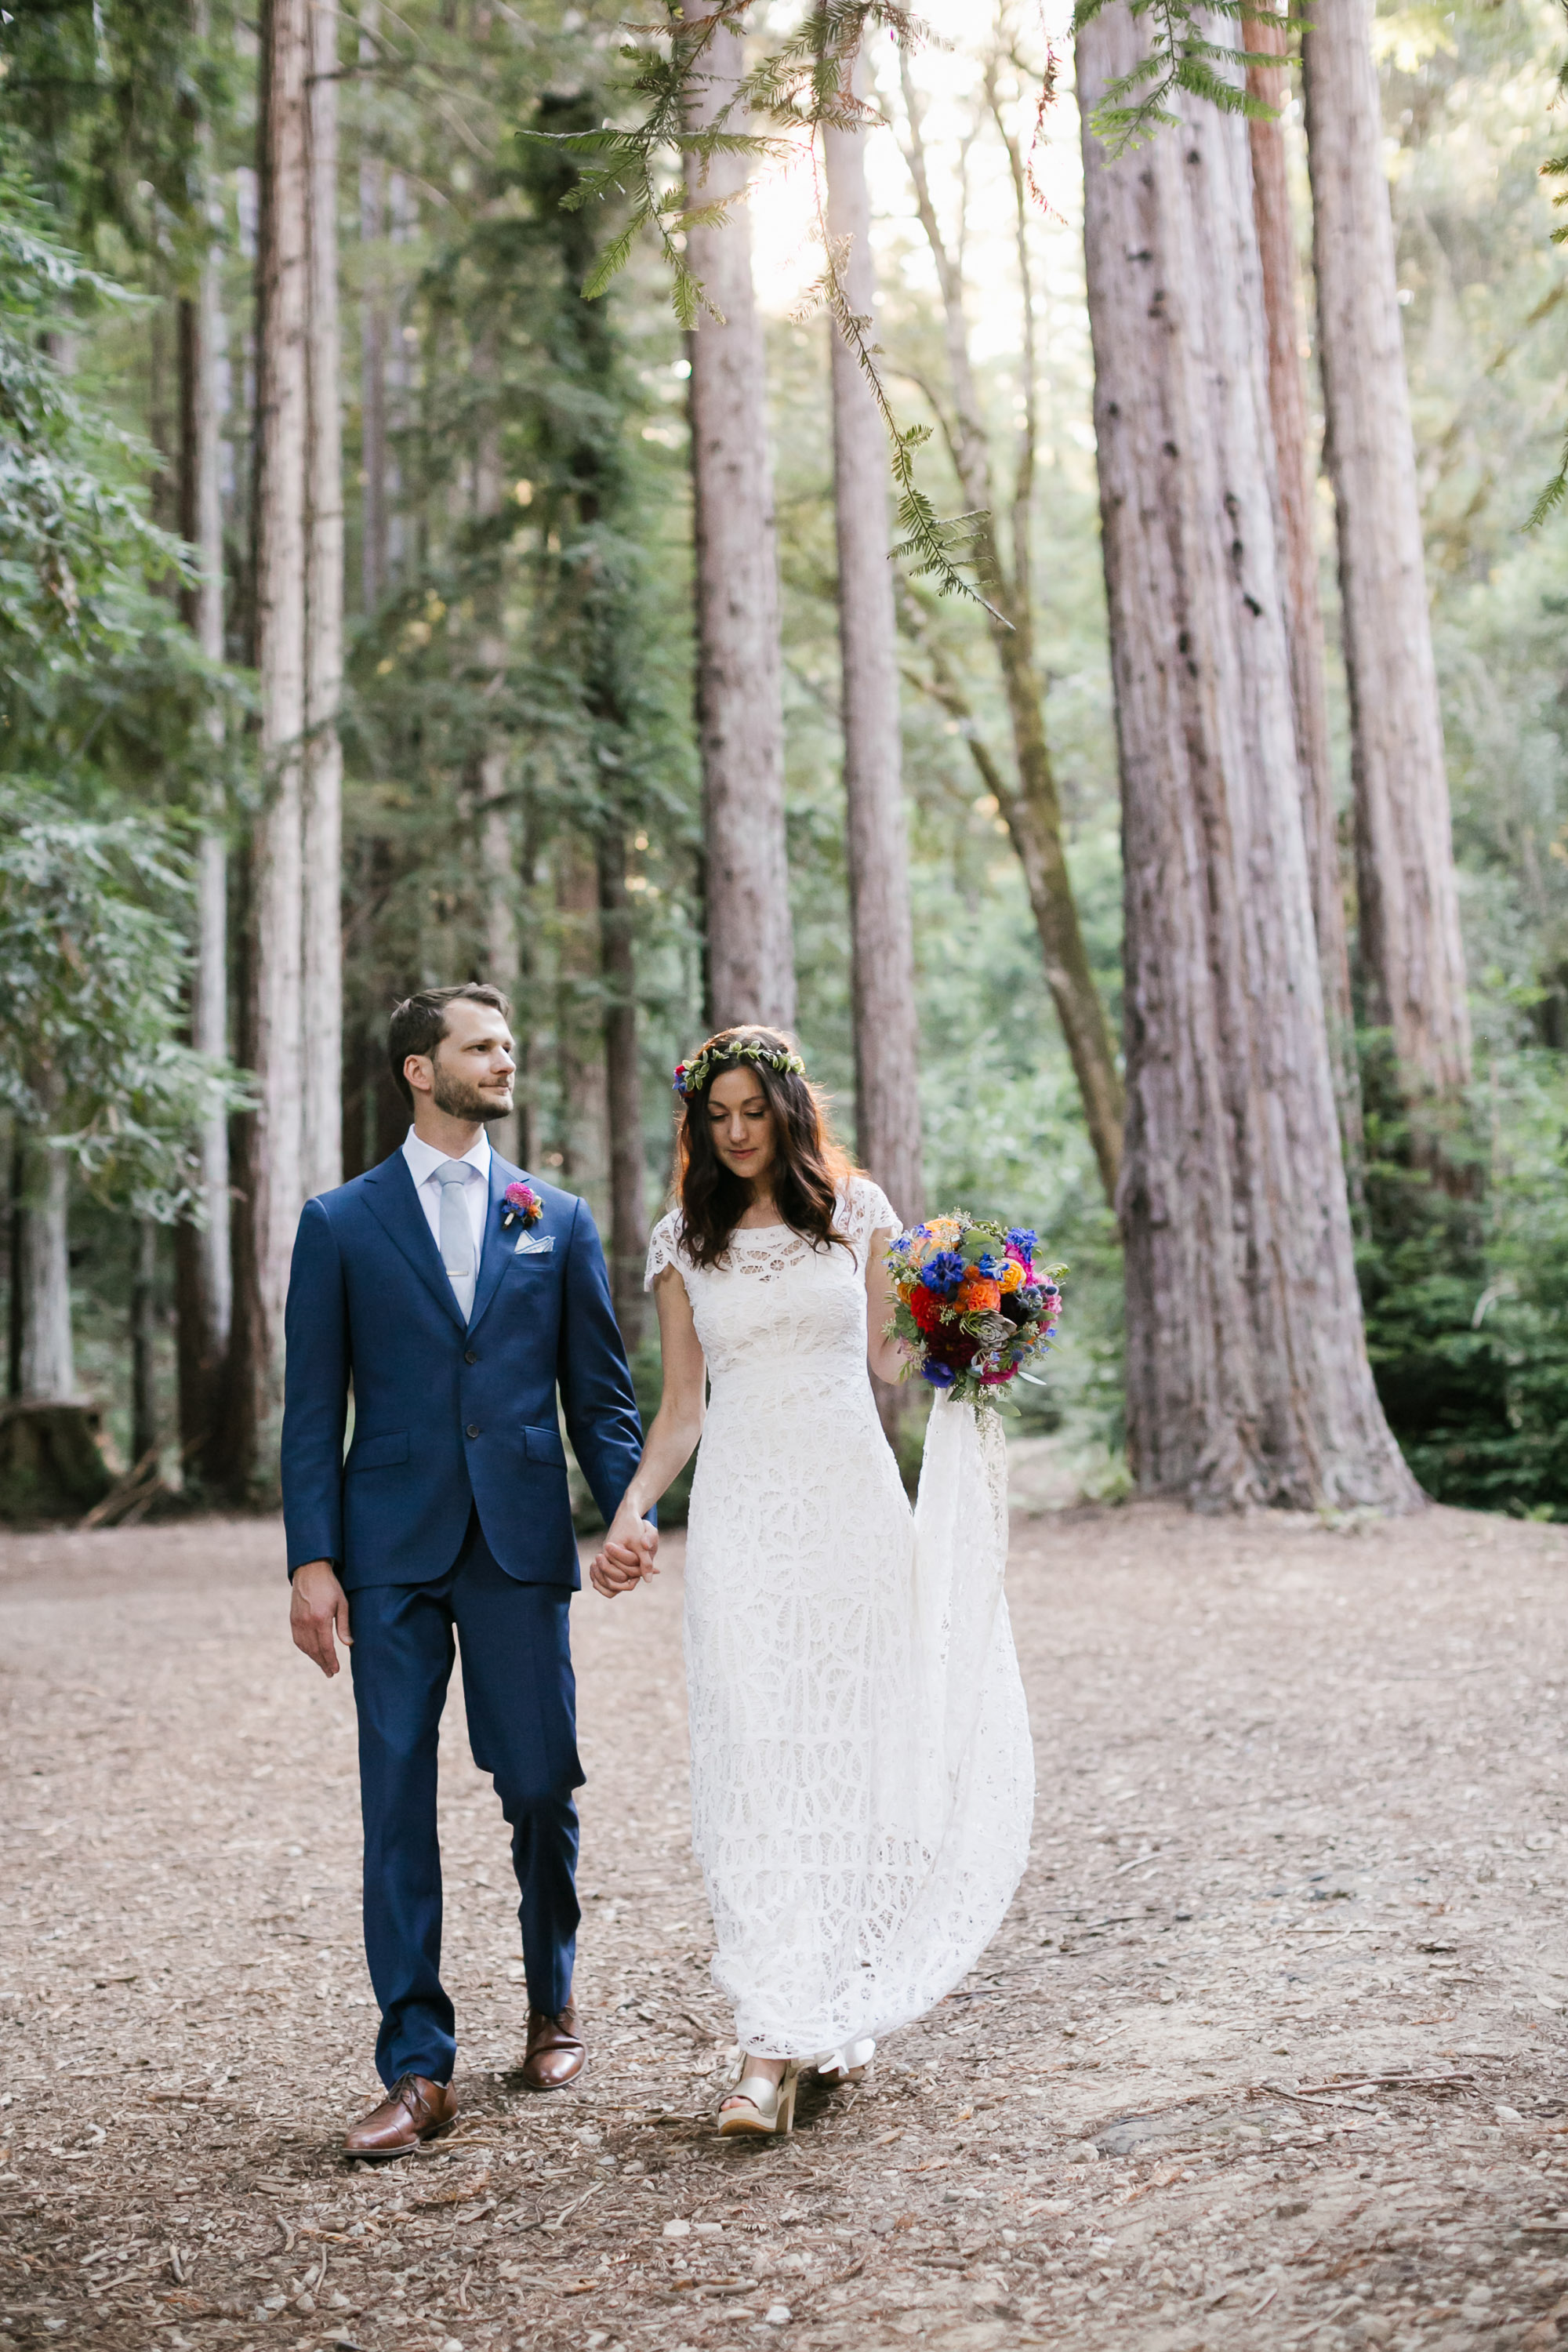 Wedding couple hold hands walking through the forest